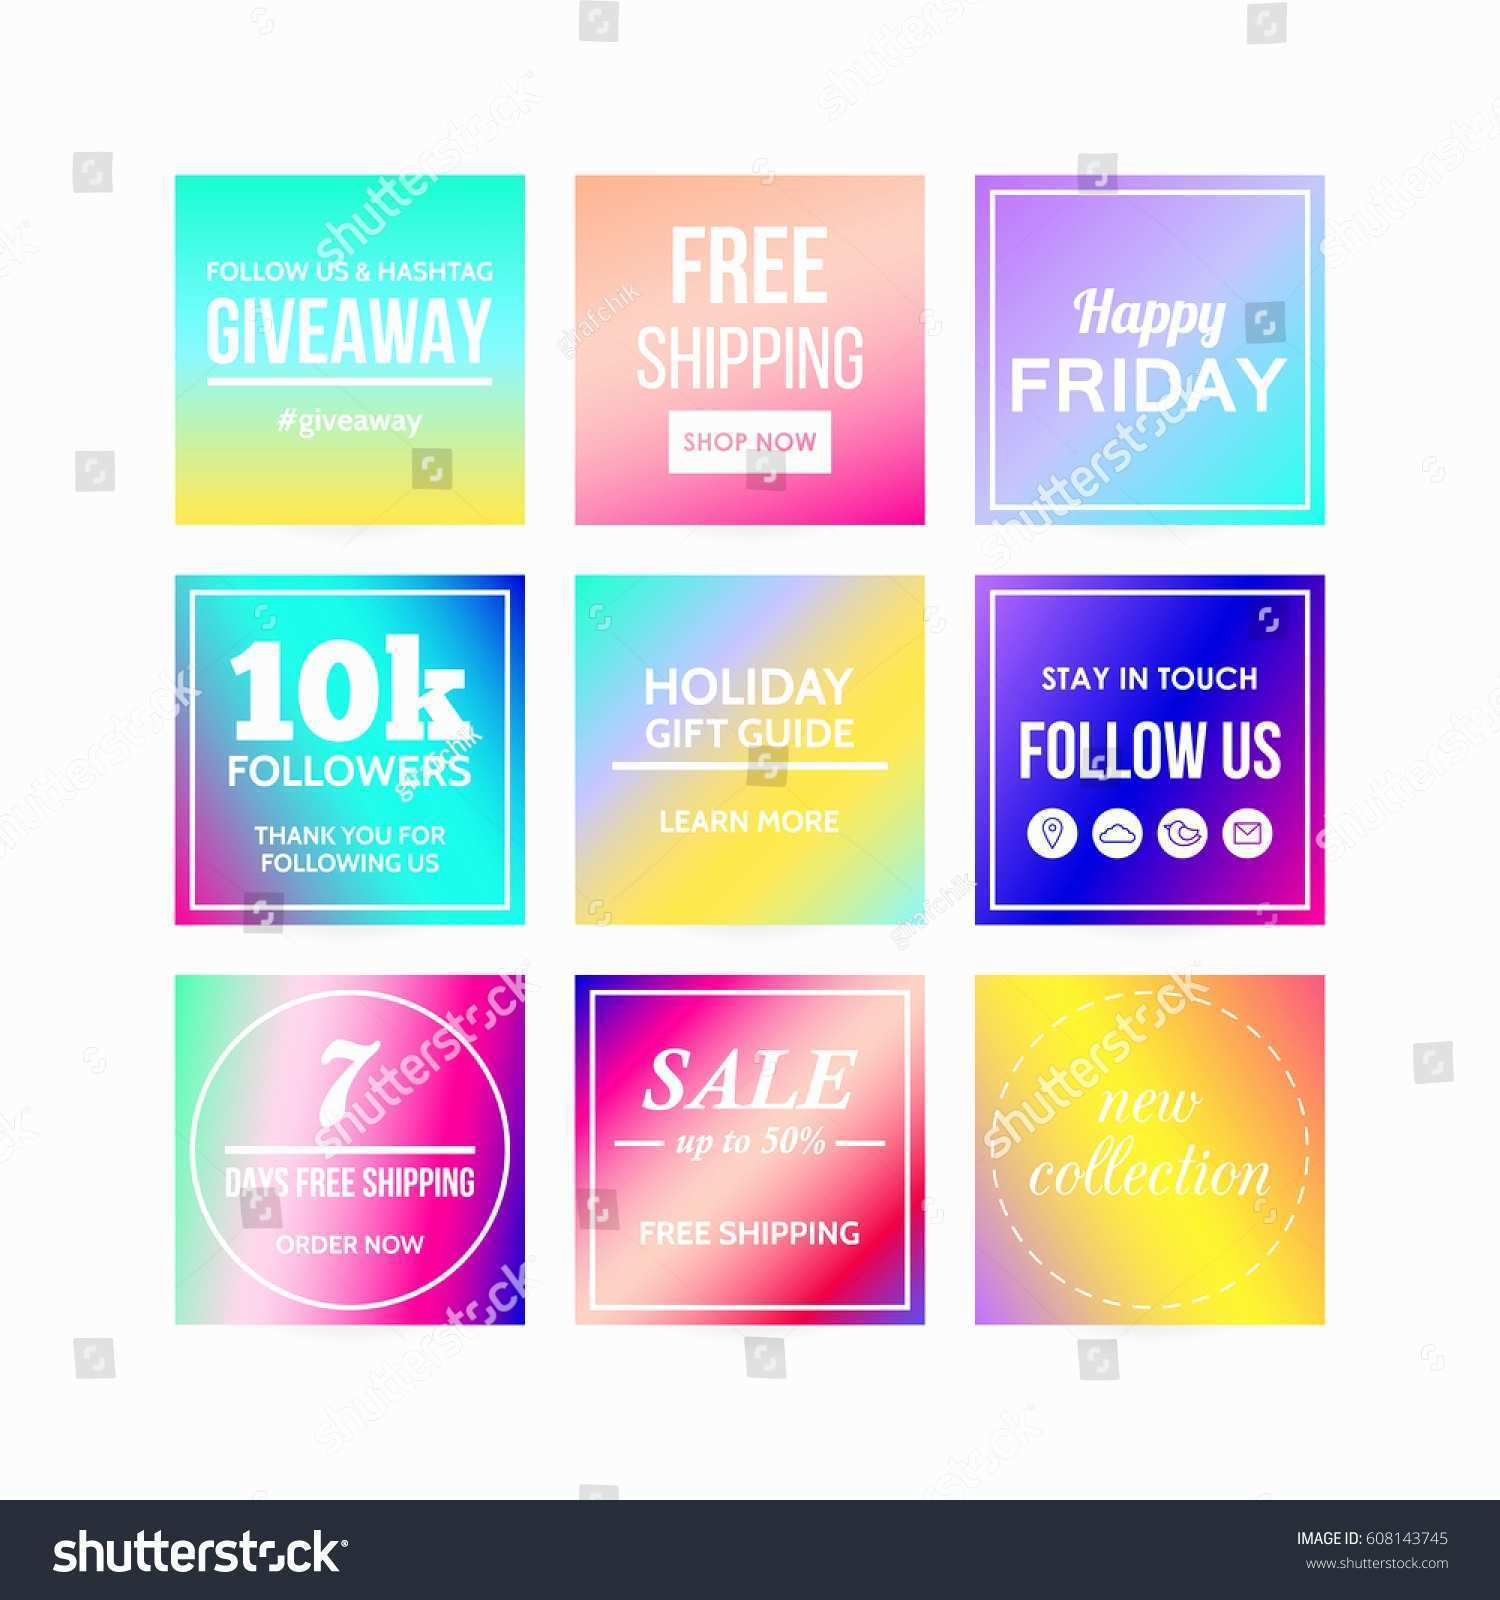 follow us on social media template free